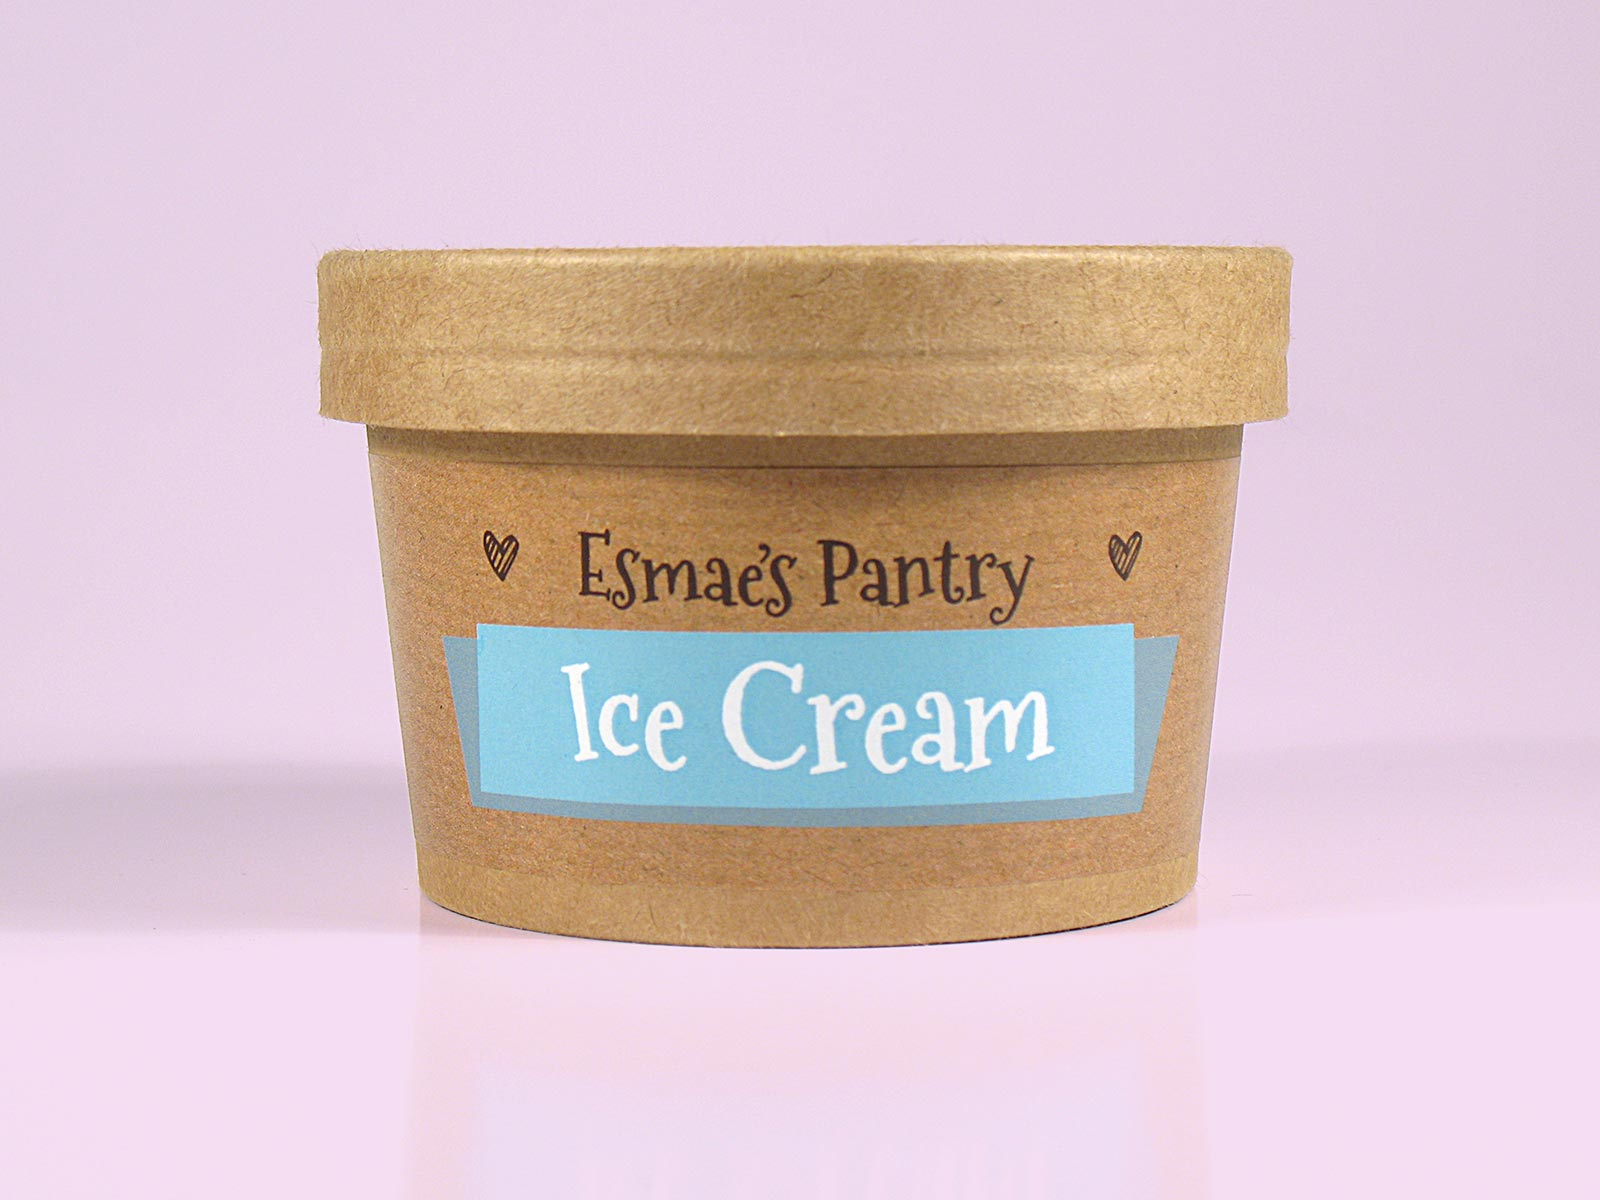 Esmae's Pantry Packaging Design Dog Ice Cream